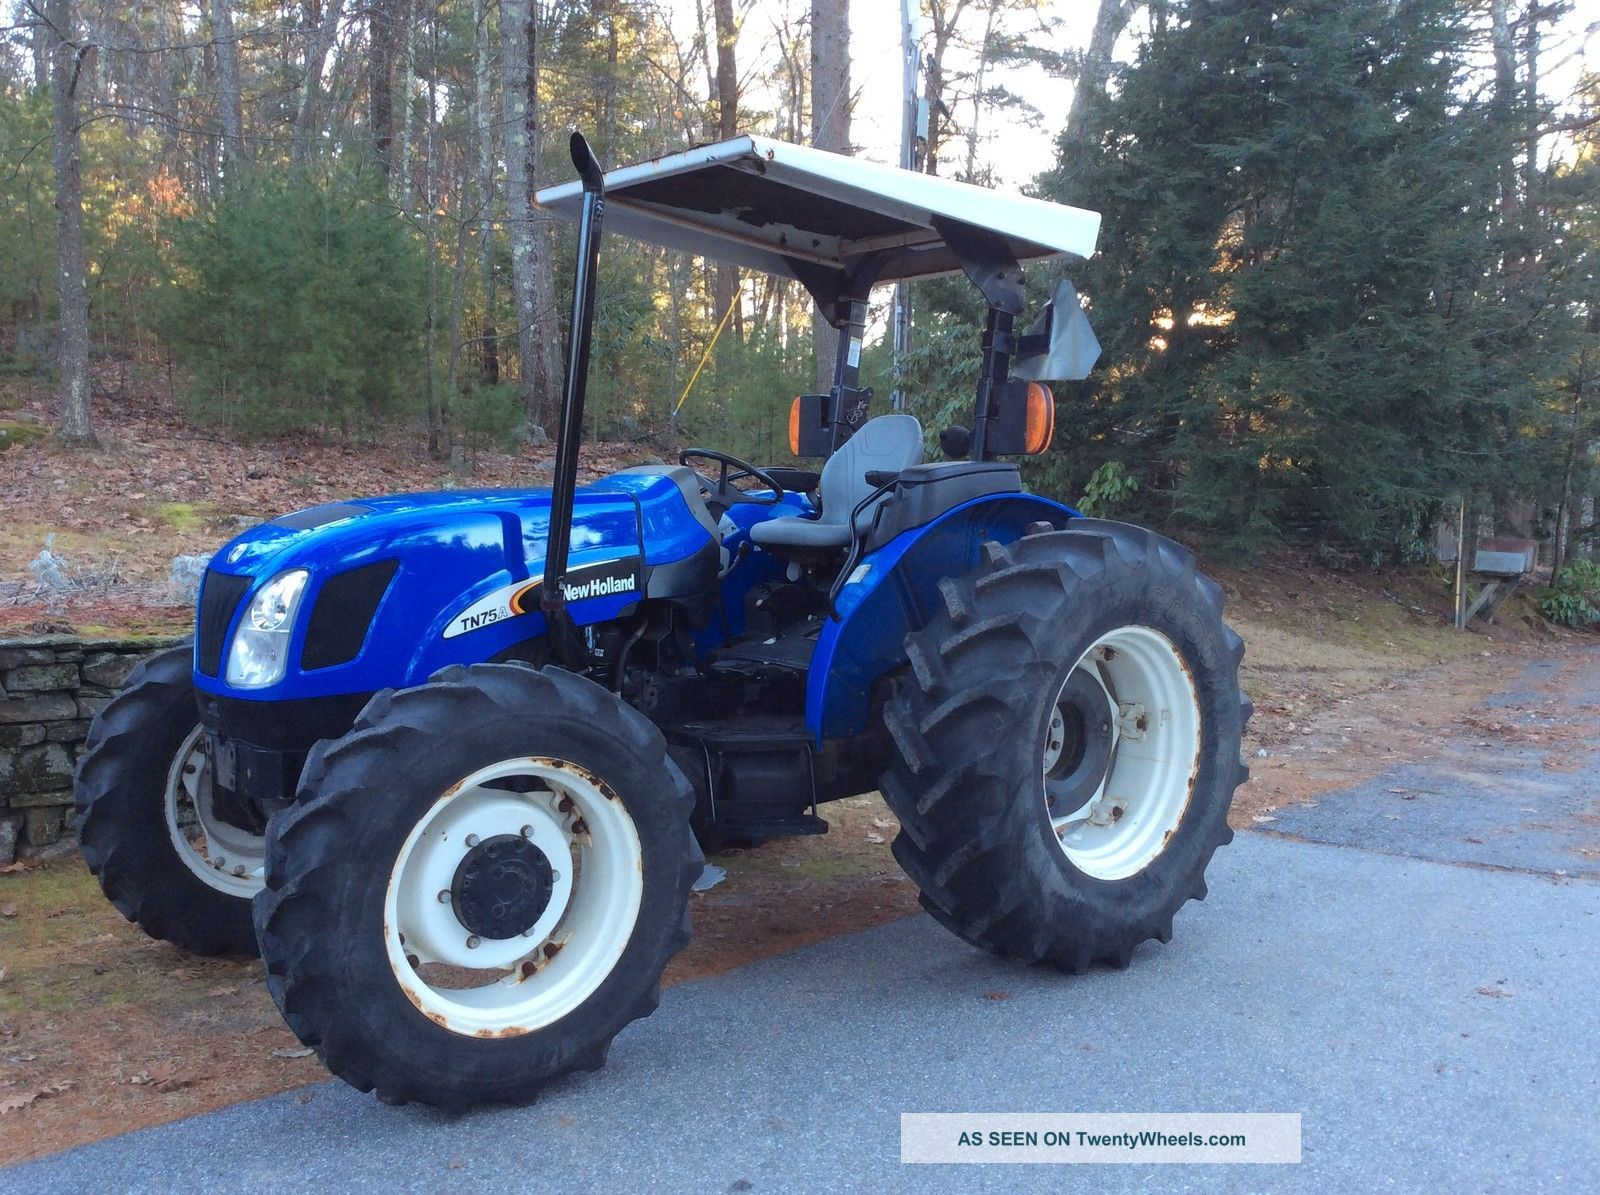 2004 Holland Tn75a 4wd Tractor Only 928 Hours 75hp